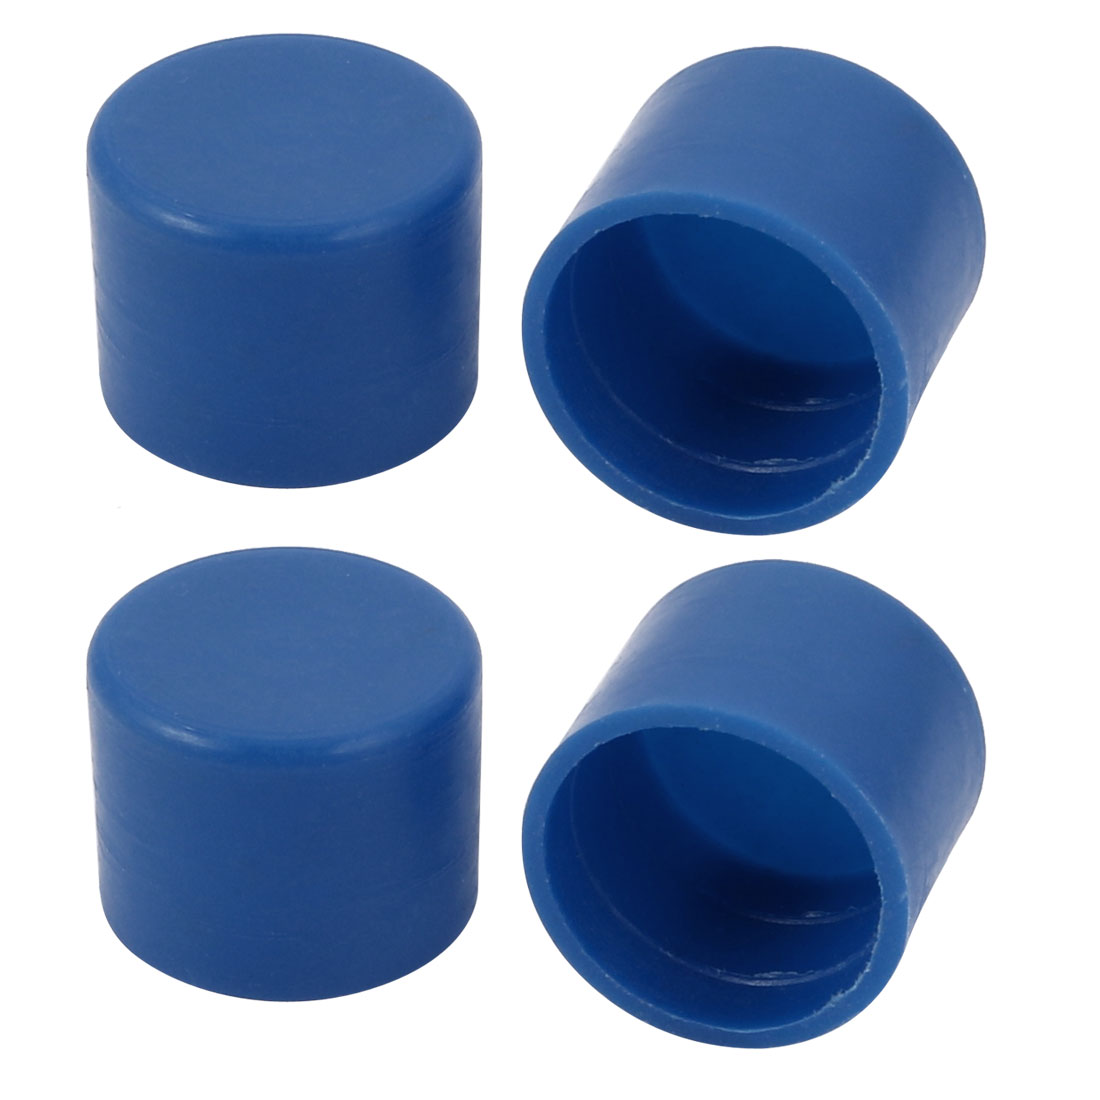 4pcs 15mm Outer Dia PE Plastic End Cap Bolt Thread Protector Tube Cover Blue